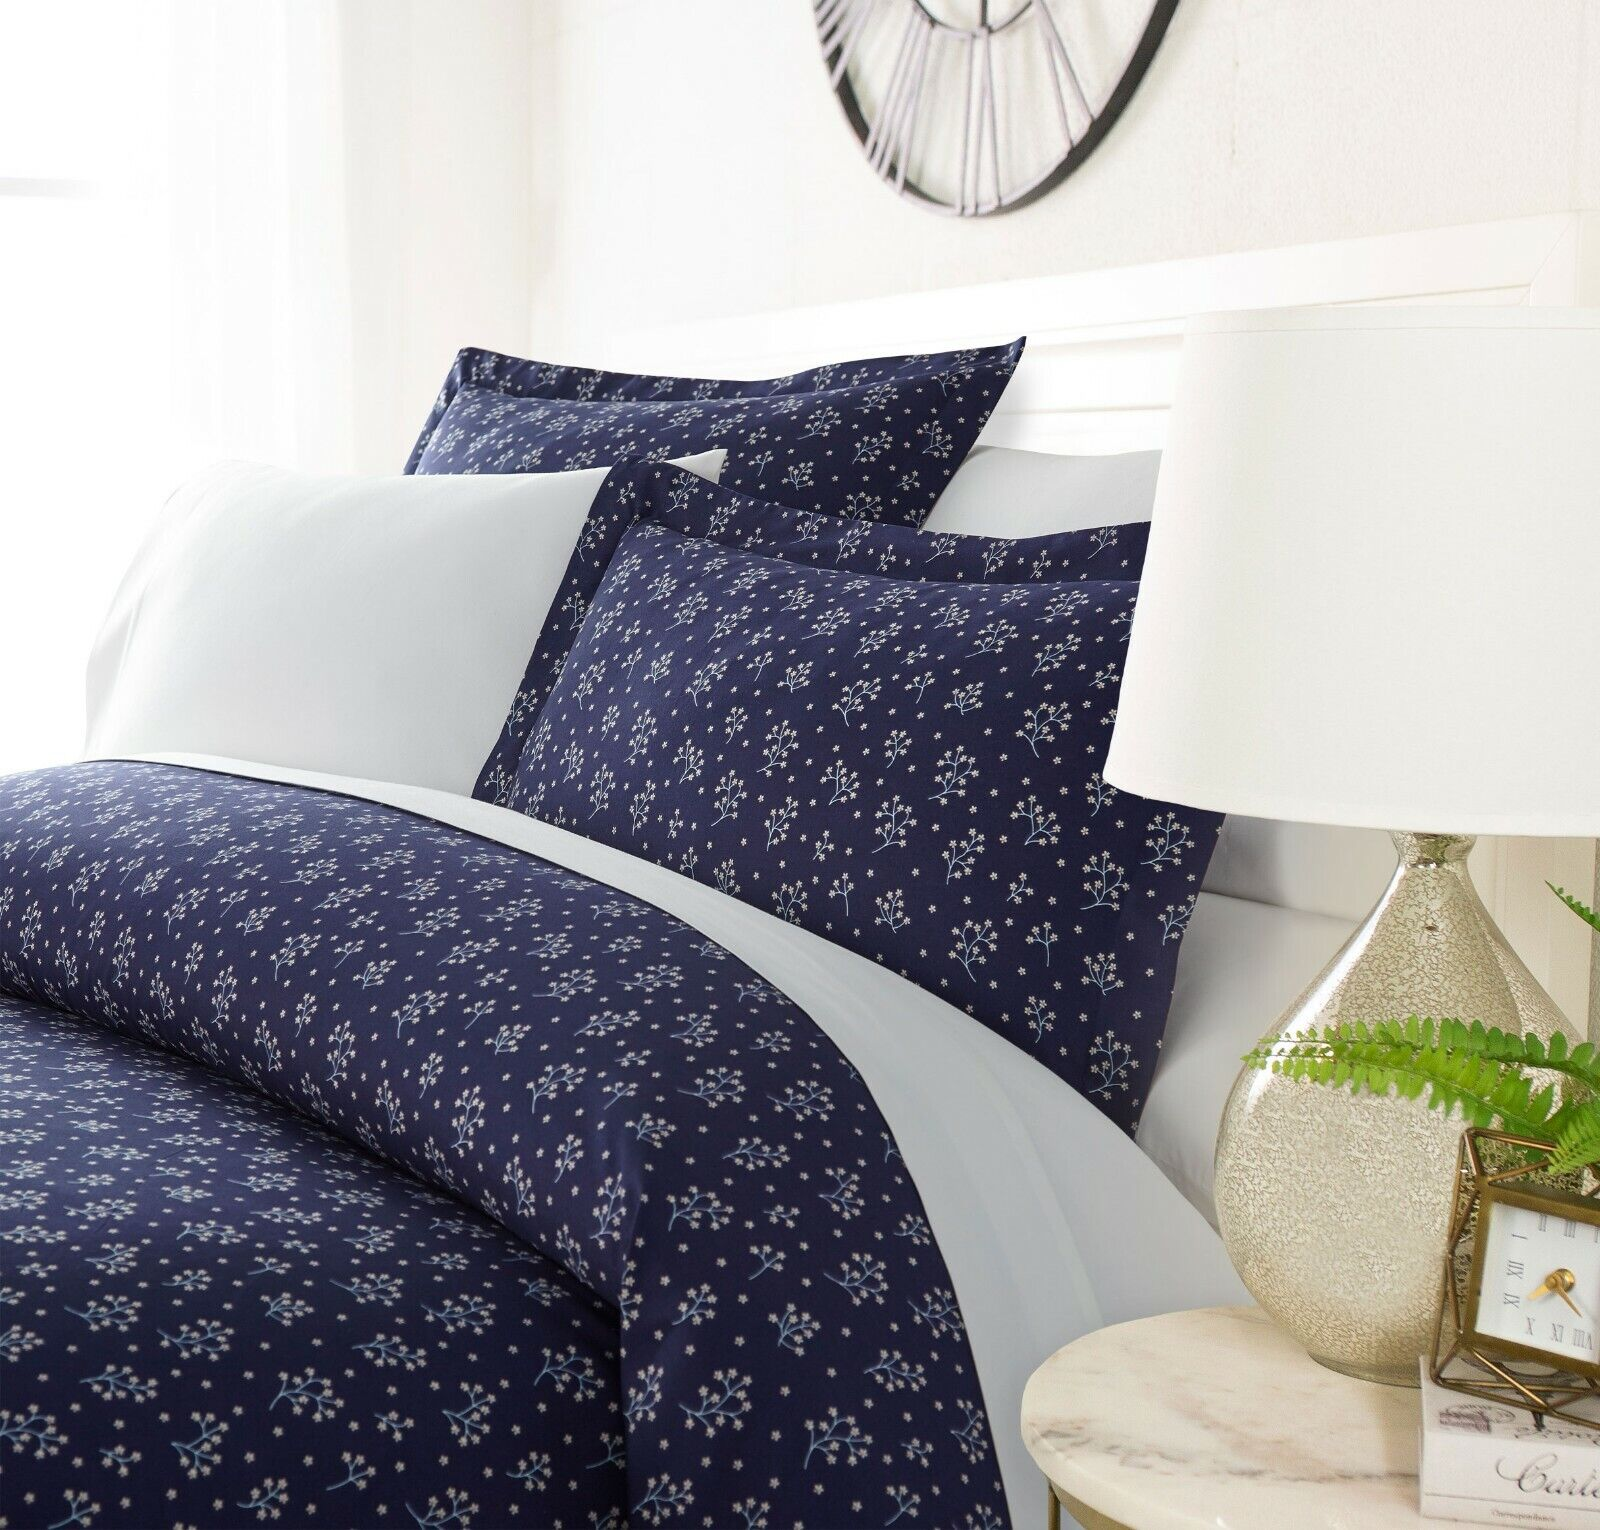 Luxury Ultra Soft Evening Blooms Duvet Cover Set By Sharon Osbourne Home